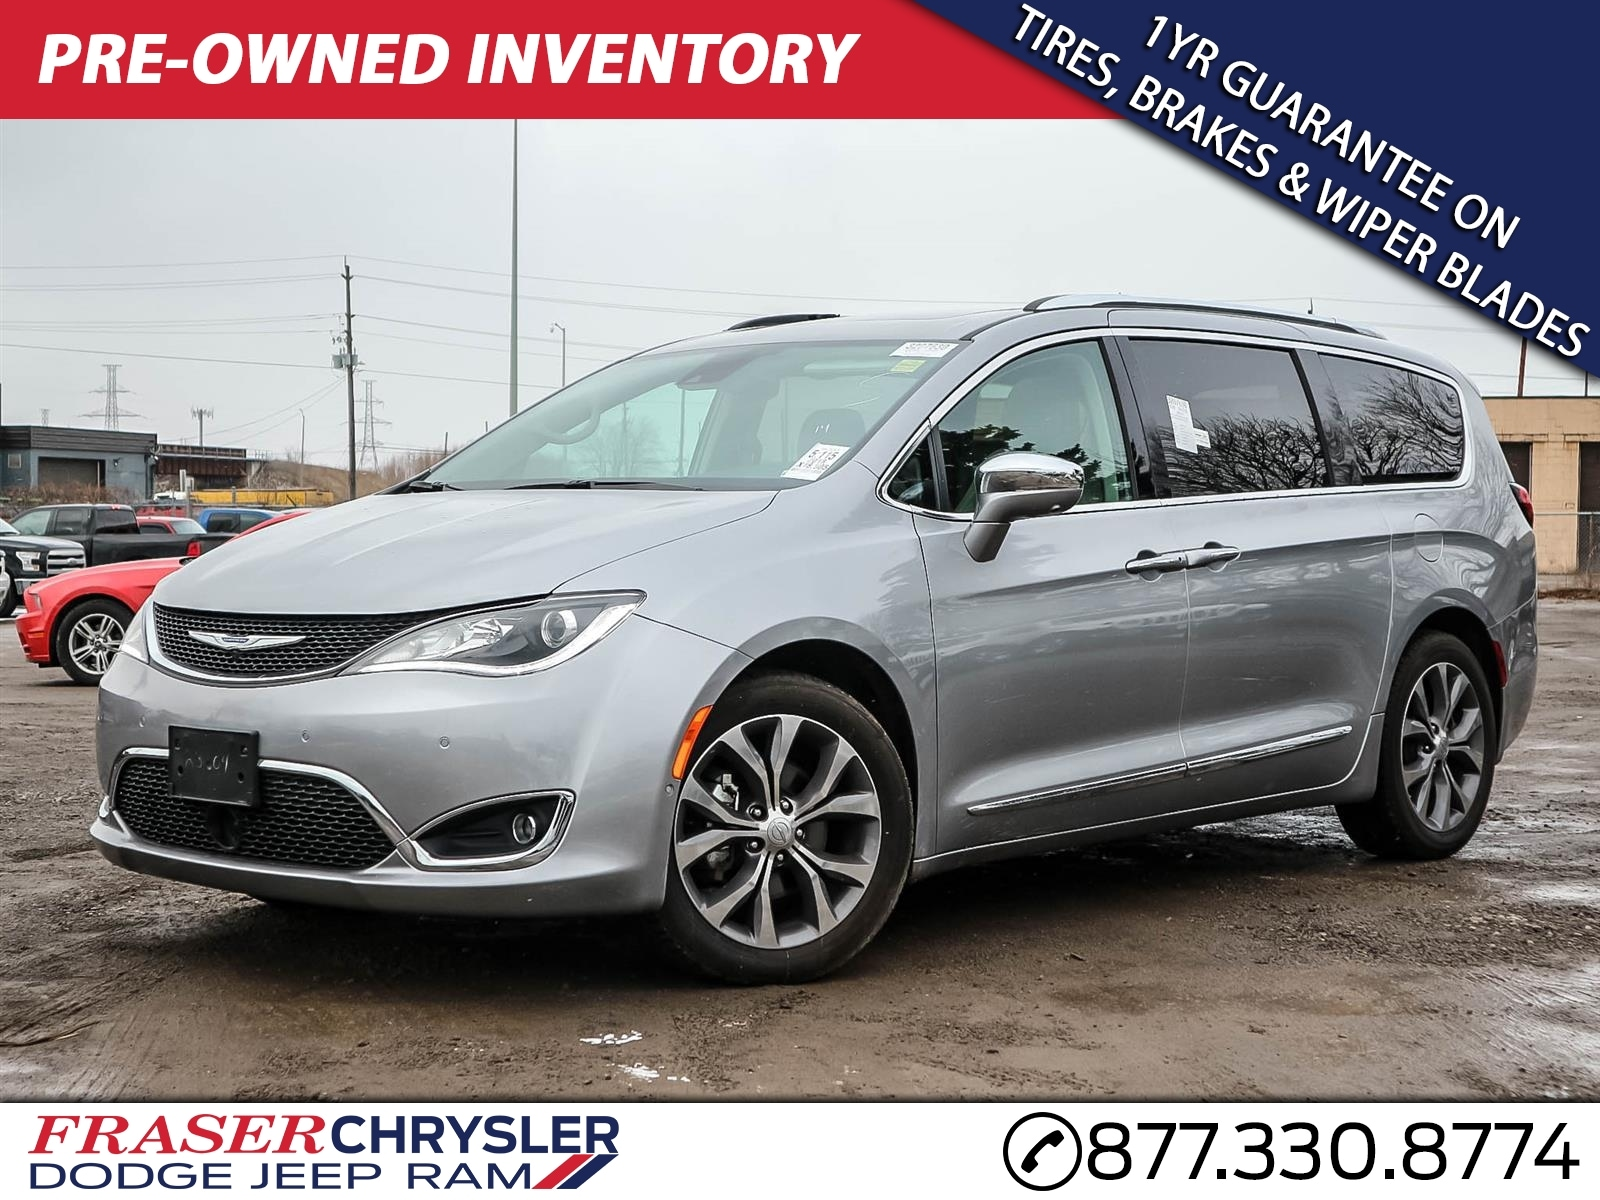 Used 2018 Chrysler PACIFICA LIMITED COMPANY CAR, NAVIGATION, SUNROOF, LEATHER, POWER S VAN for sale in Oshawa, ON